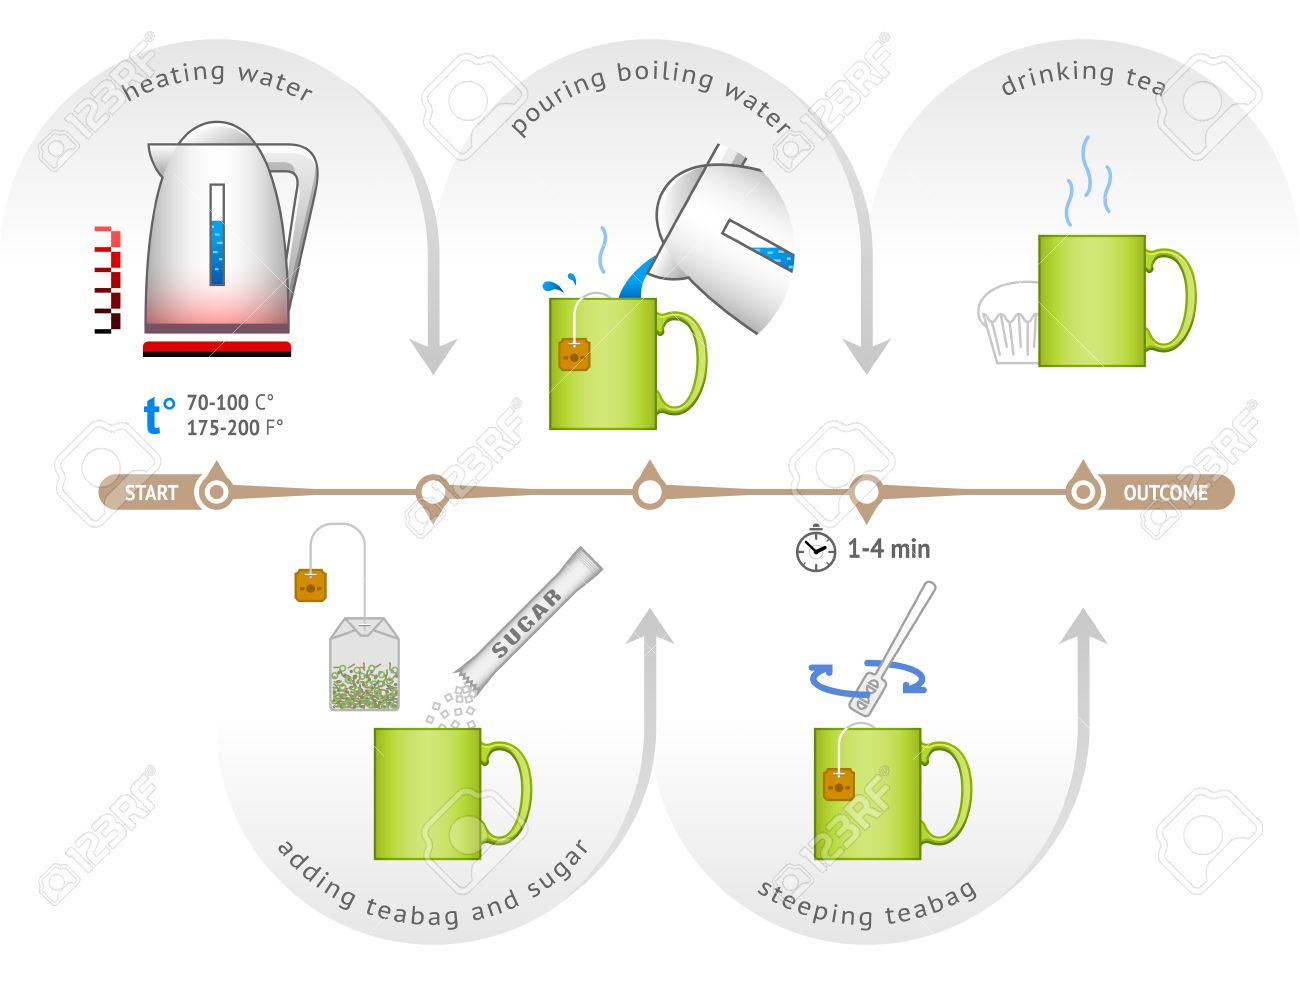 Fabulous Infographic For Process Of Brewing Teabag Step By Step Hairstyles For Men Maxibearus